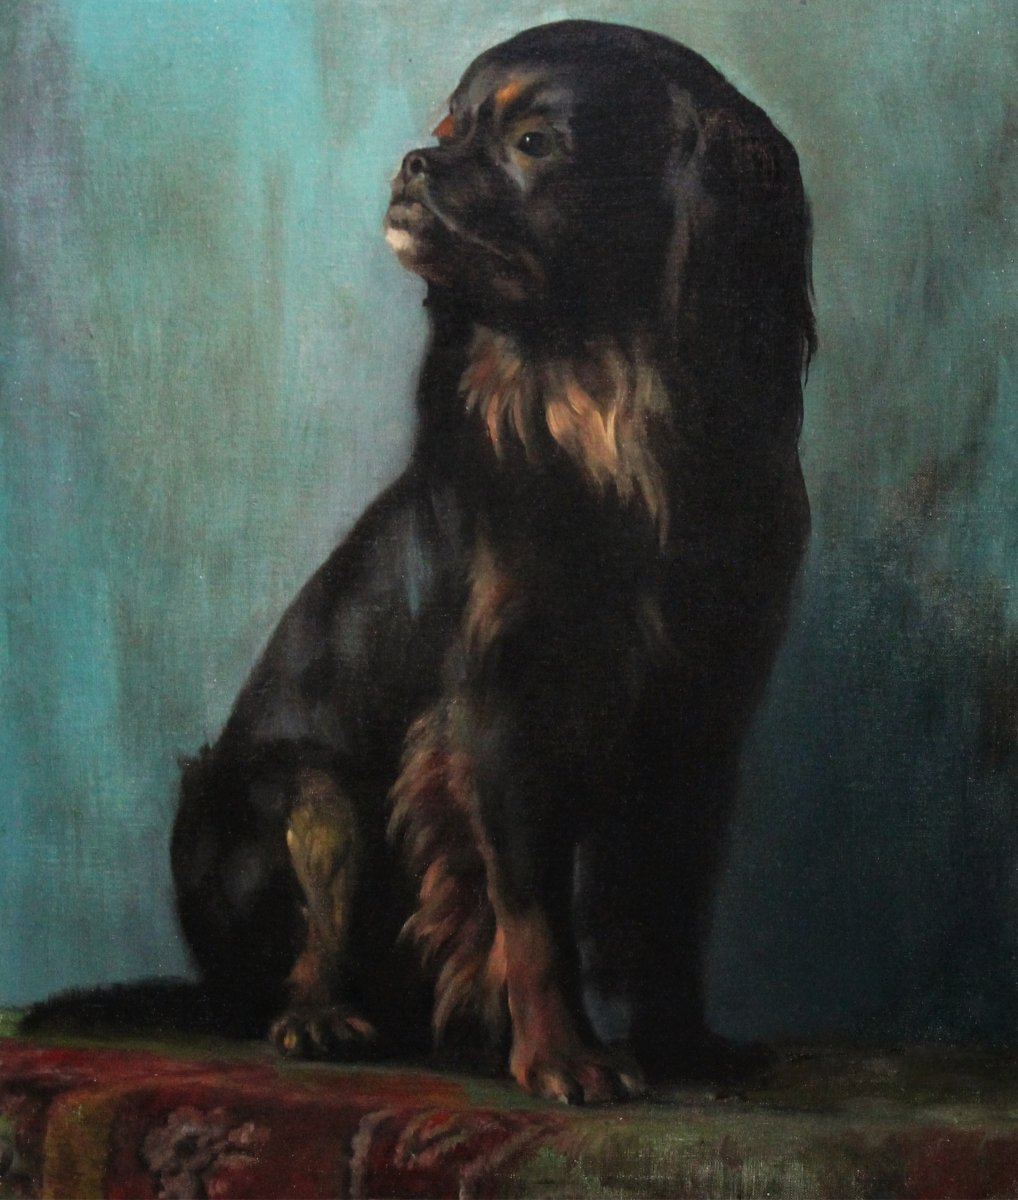 Oil Painting On Canvas, Portrait Of A Pekingese Dog 20th Century